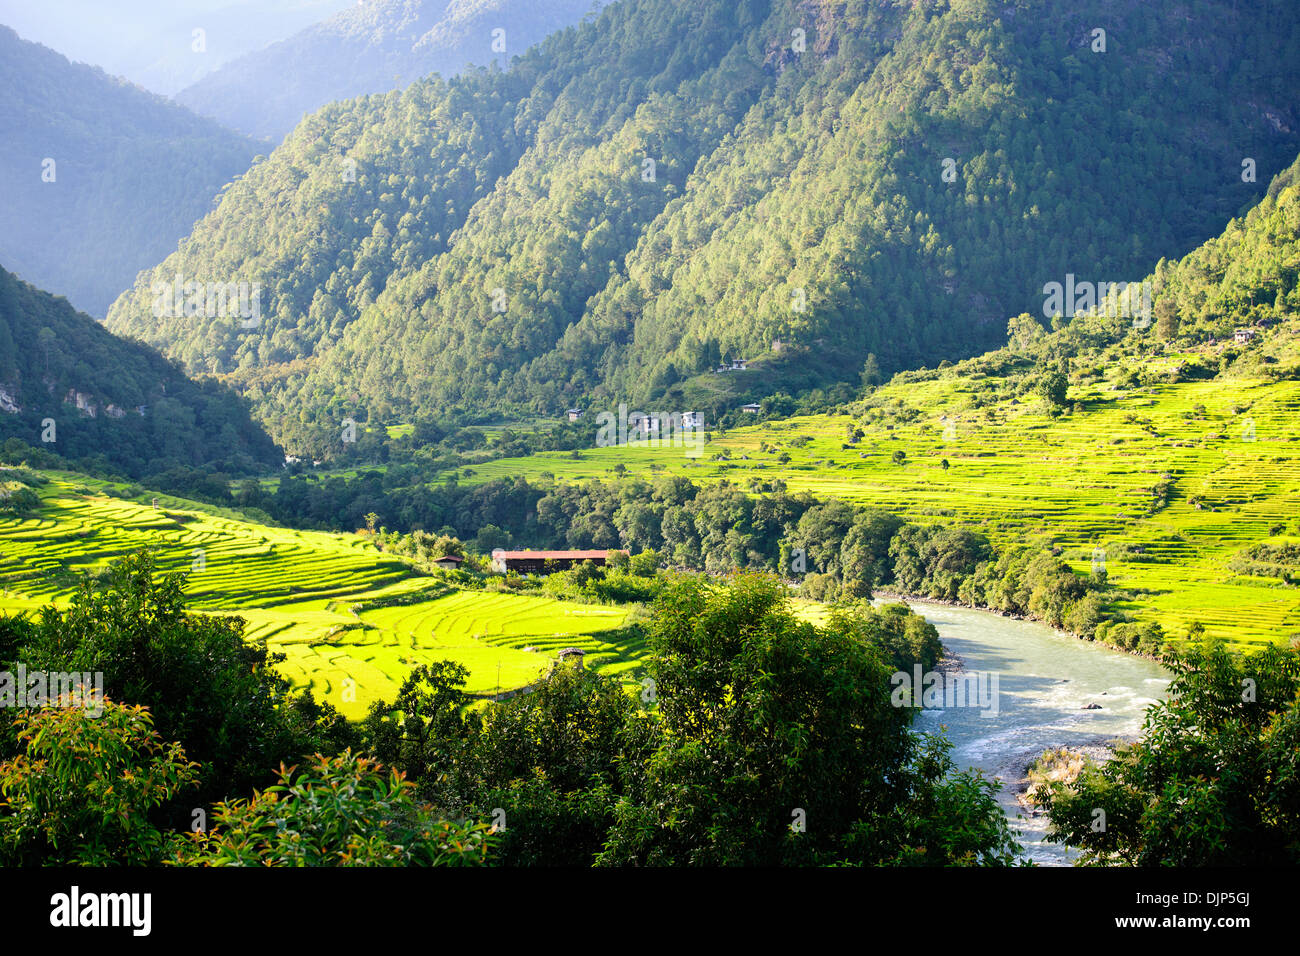 Uma Punakha Hotel views,Cascading rice Paddies,Terracing,Mo Chhu River,Farms, Bhutanese distinctive houses,Punakha Valley Floor.Bhutan - Stock Image